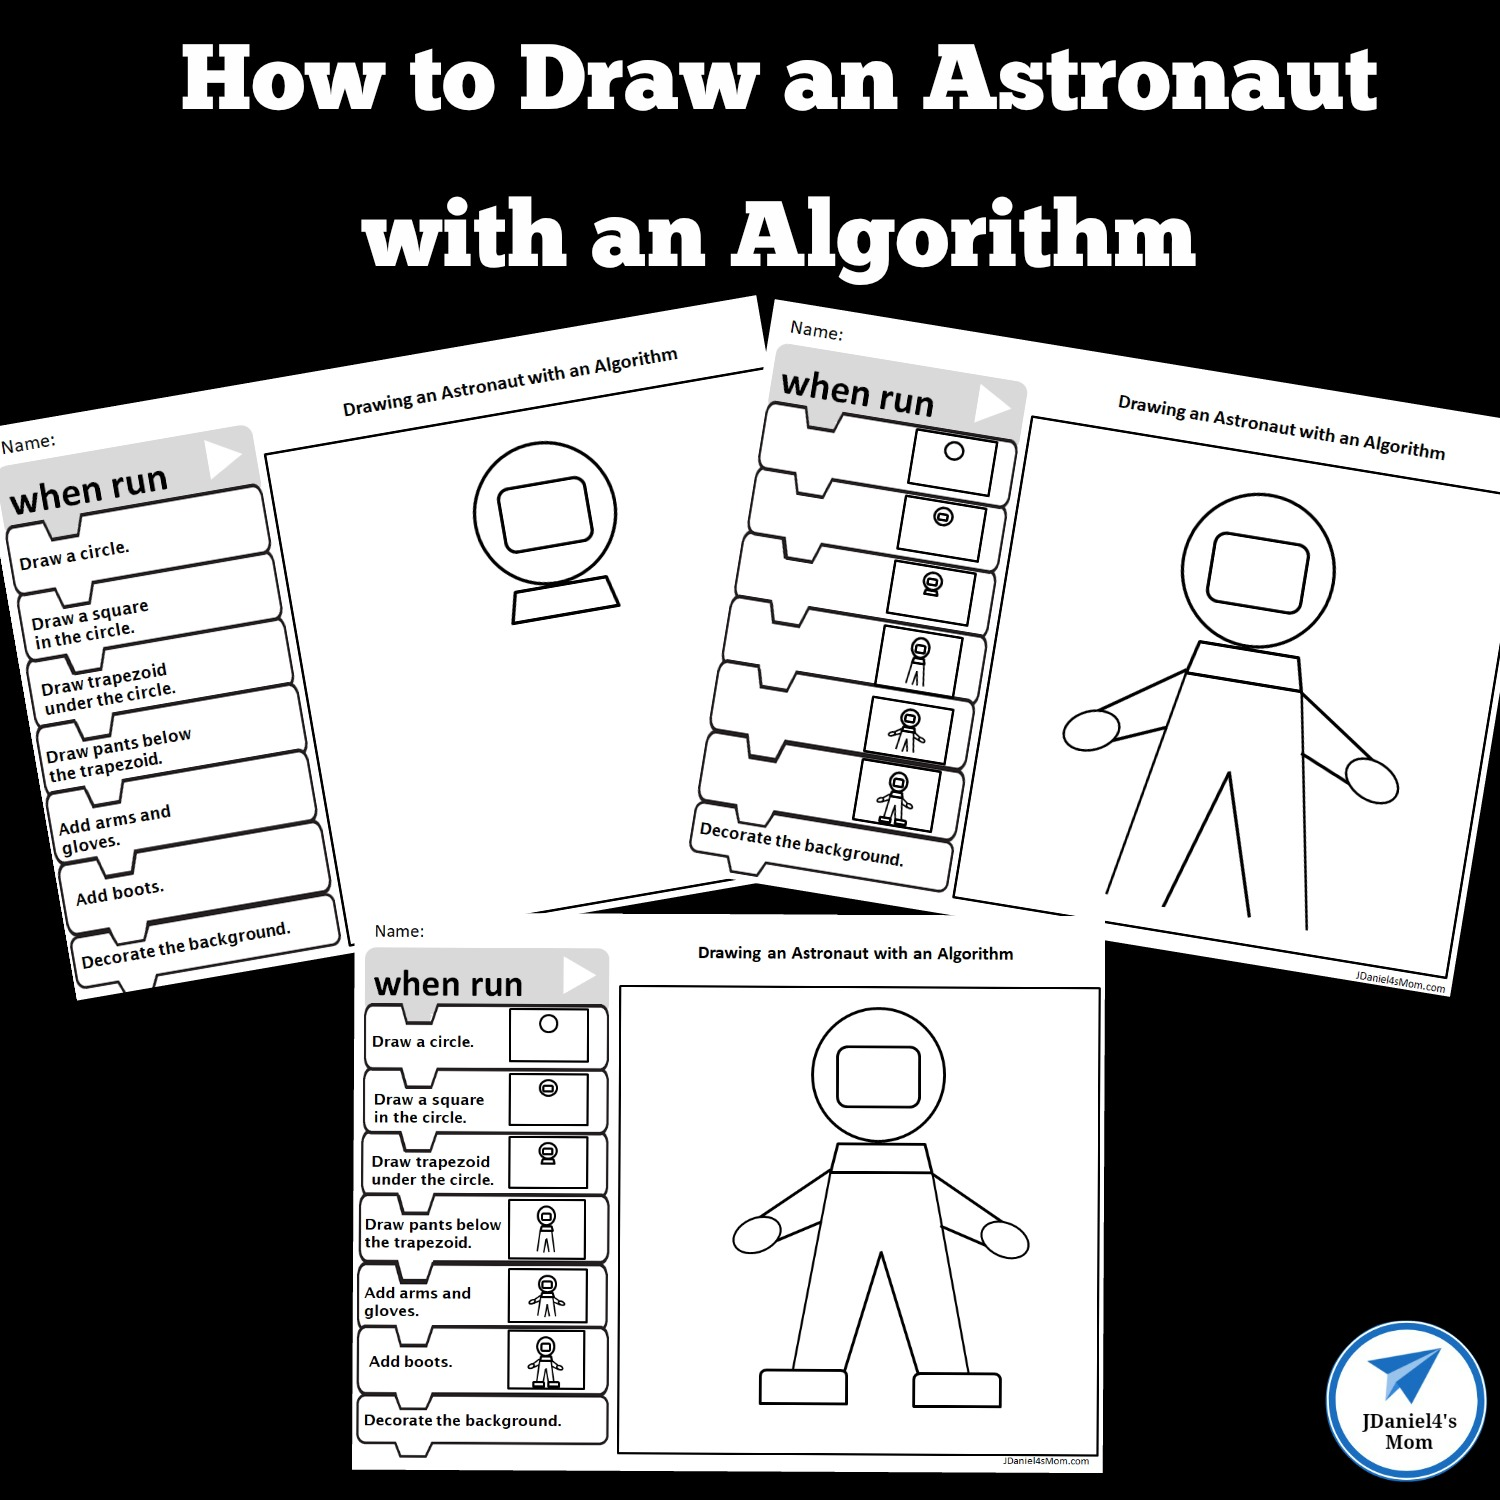 How To Draw An Astronaut With An Algorithm